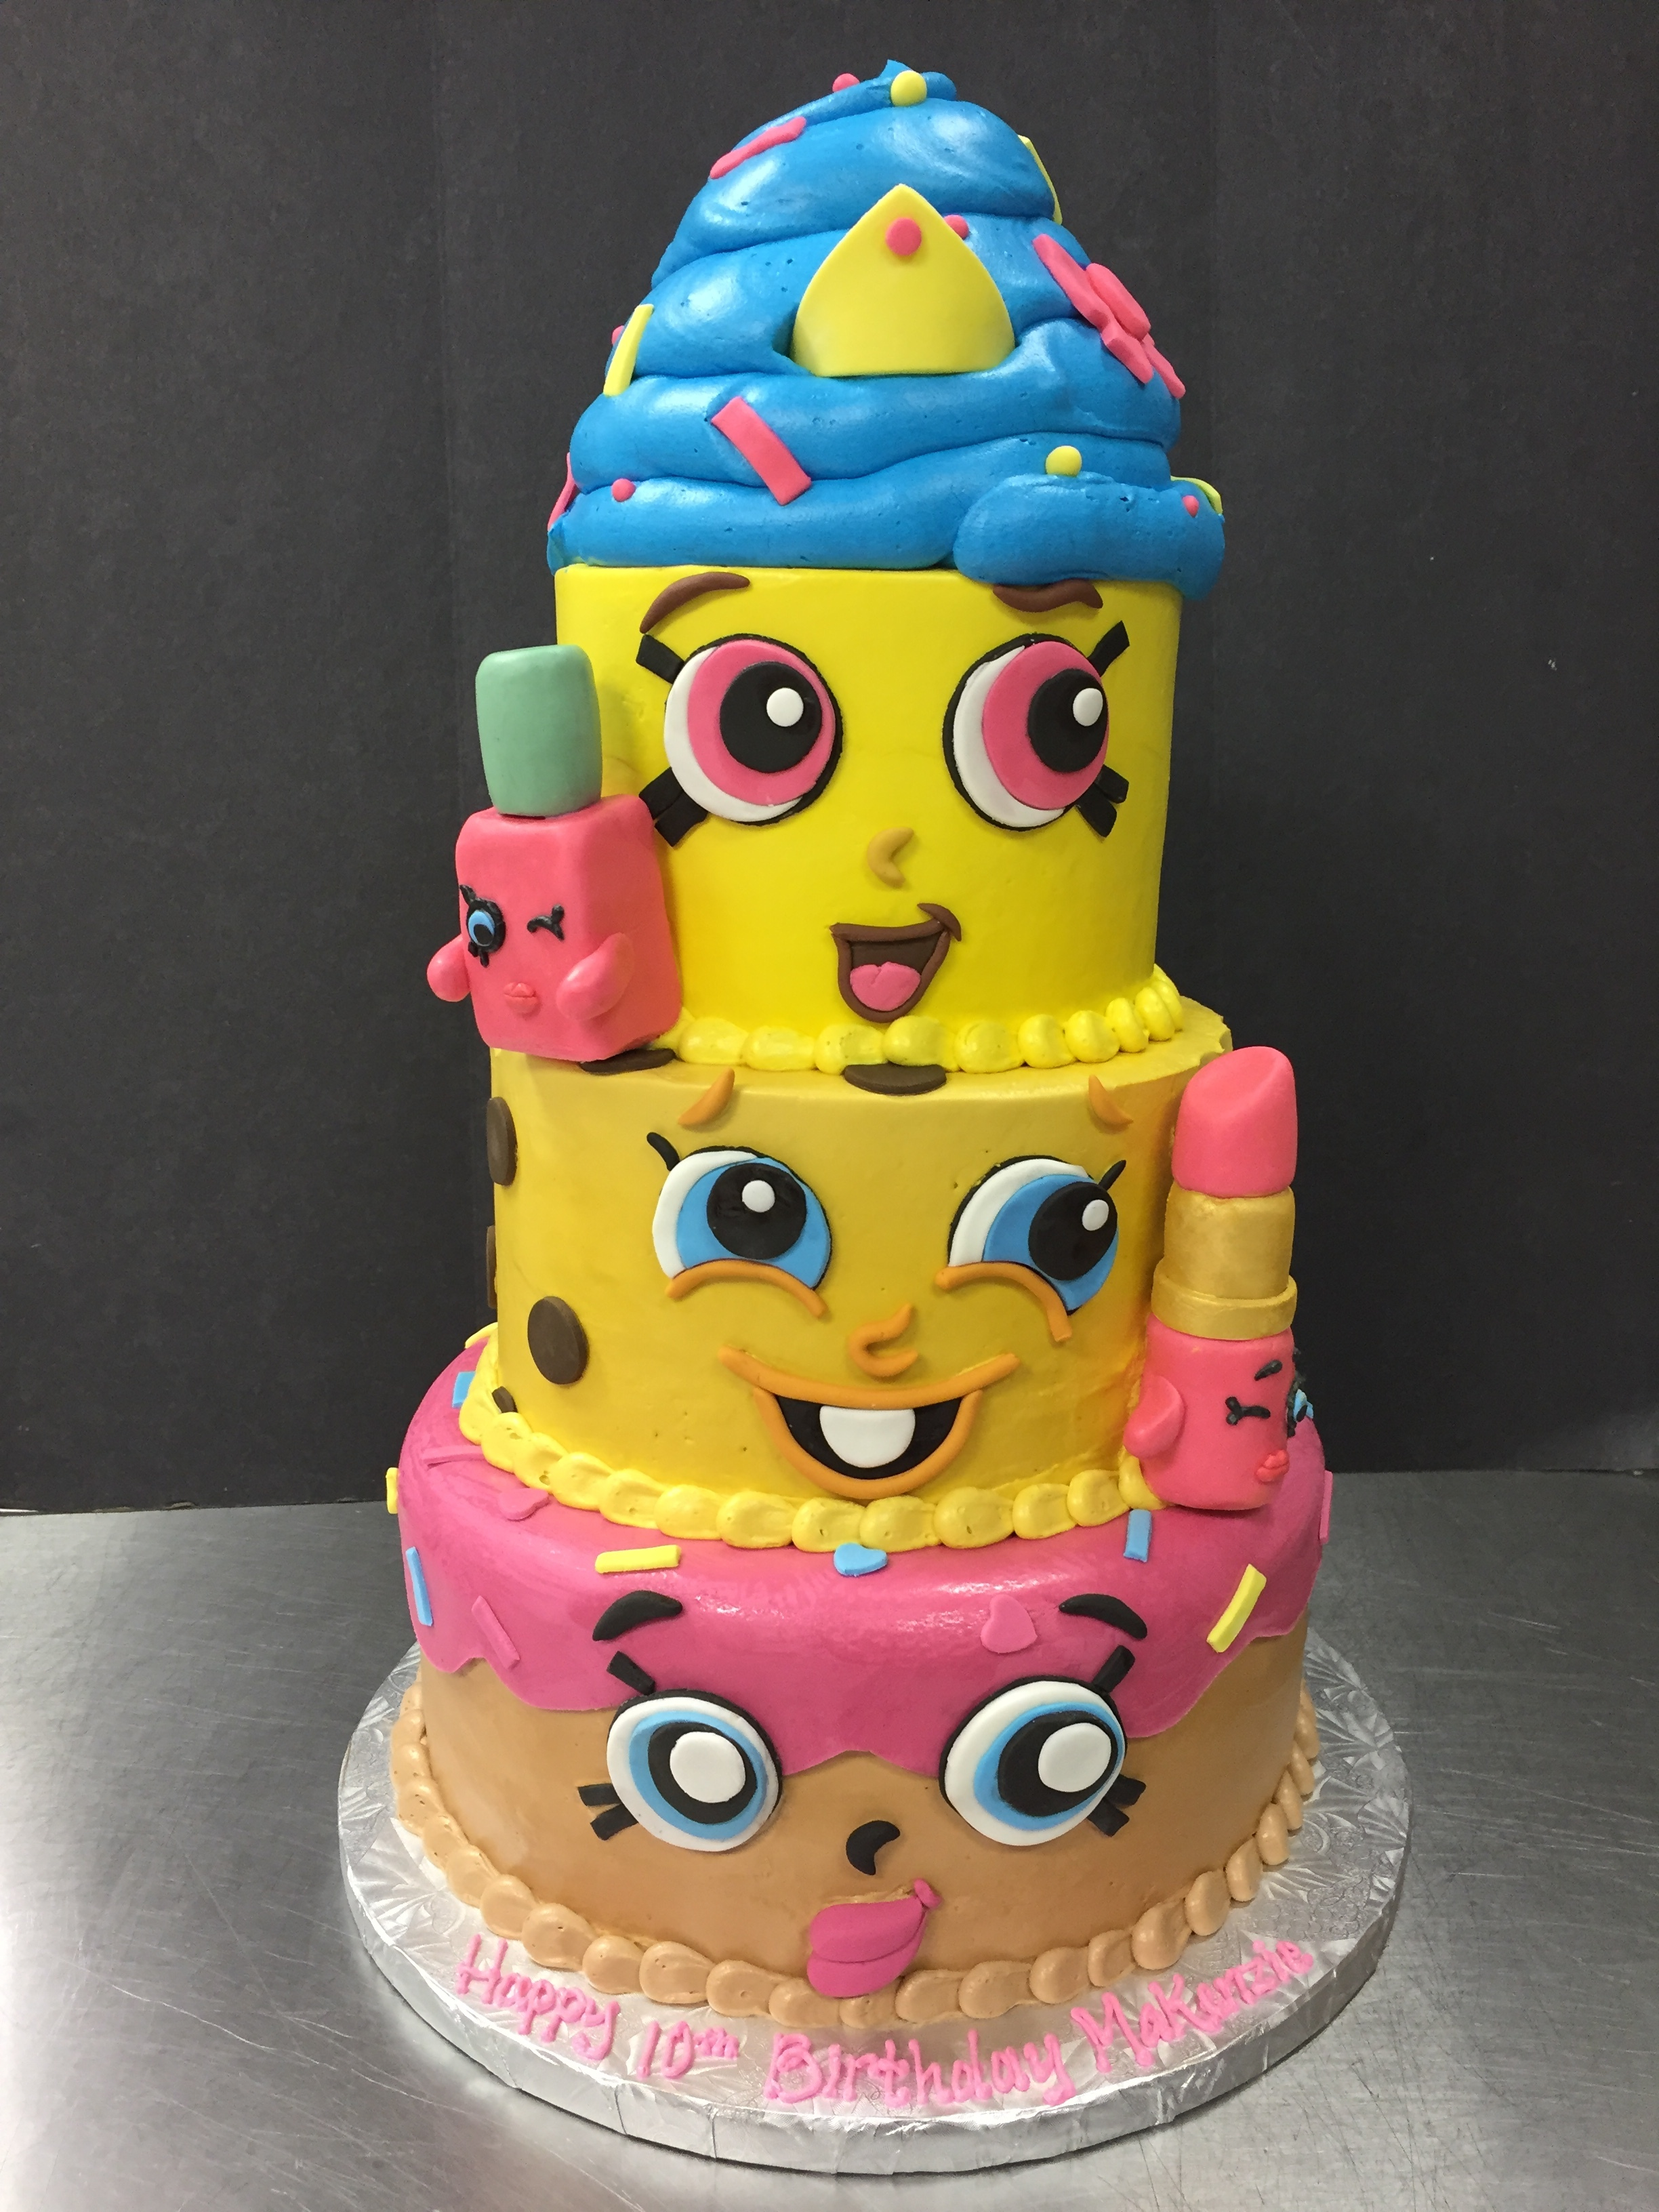 shopkins three tier cake.JPG